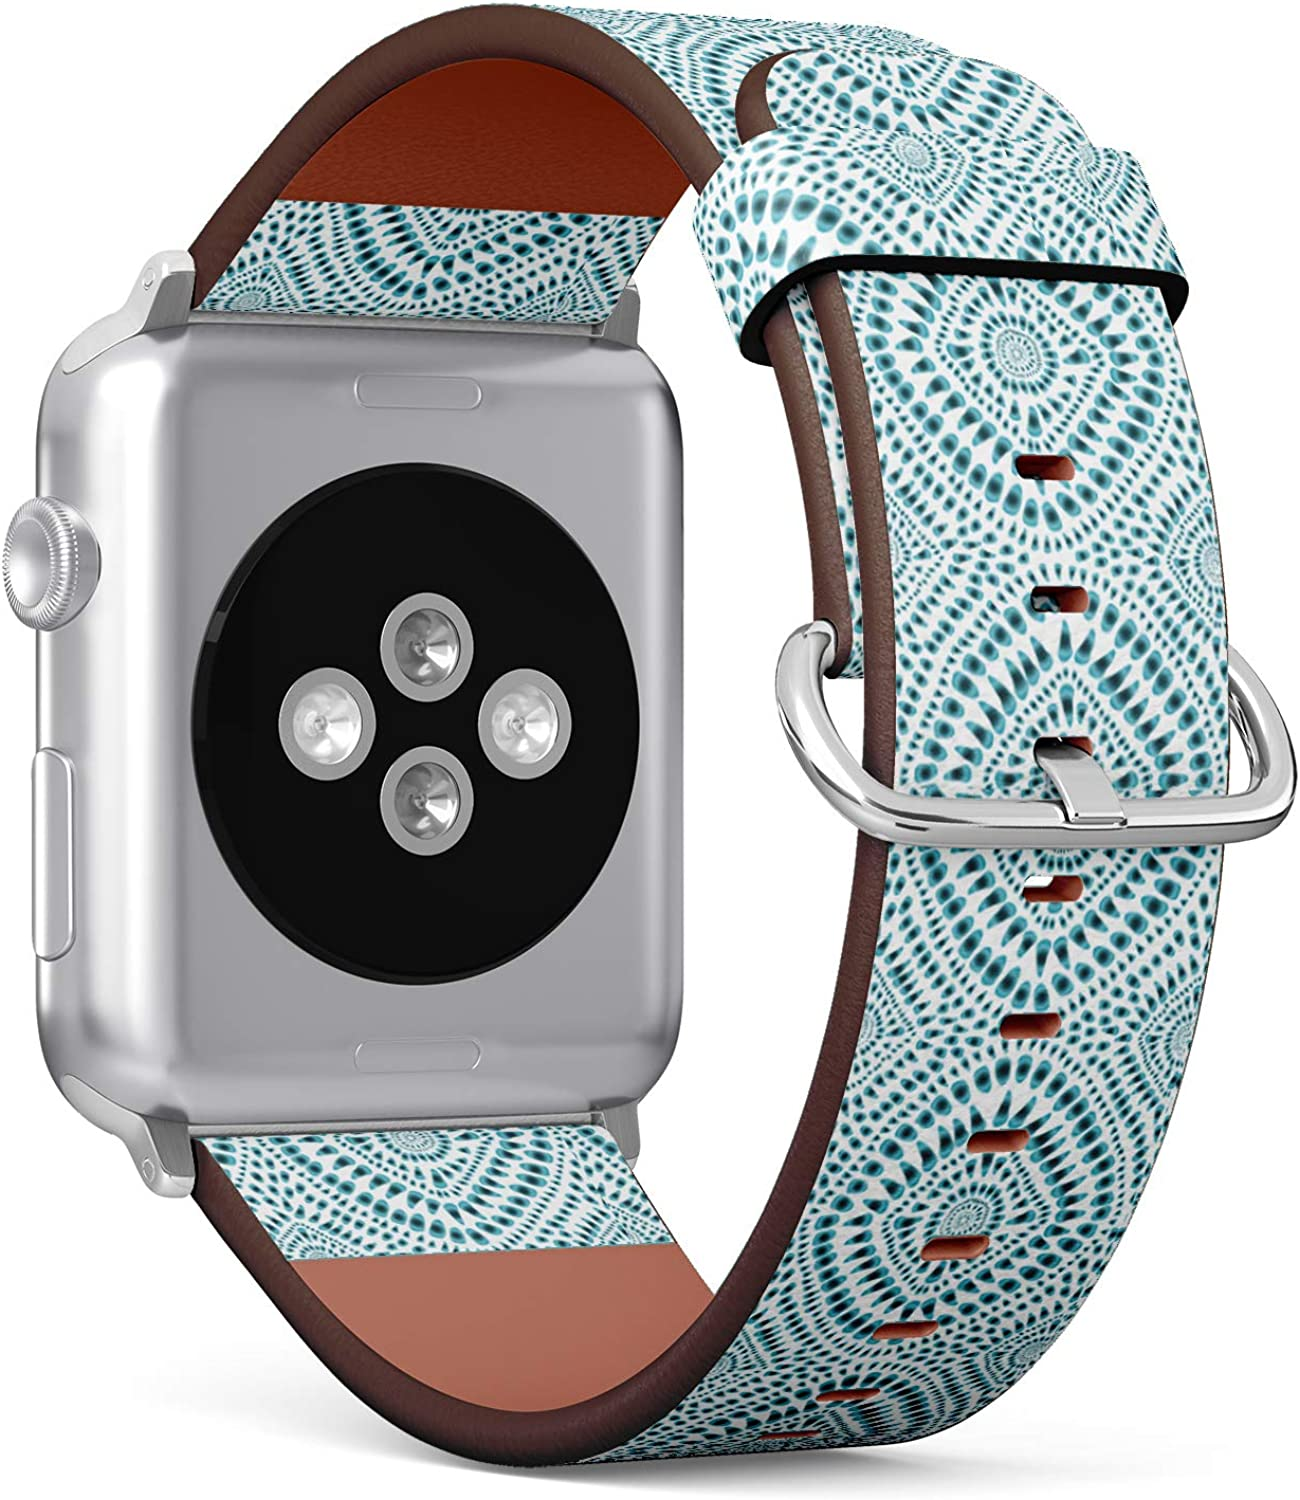 (Hippie Style Boho tie-dye Background) Patterned Leather Wristband Strap for Apple Watch Series 4/3/2/1 gen,Replacement for iWatch 42mm / 44mm Bands